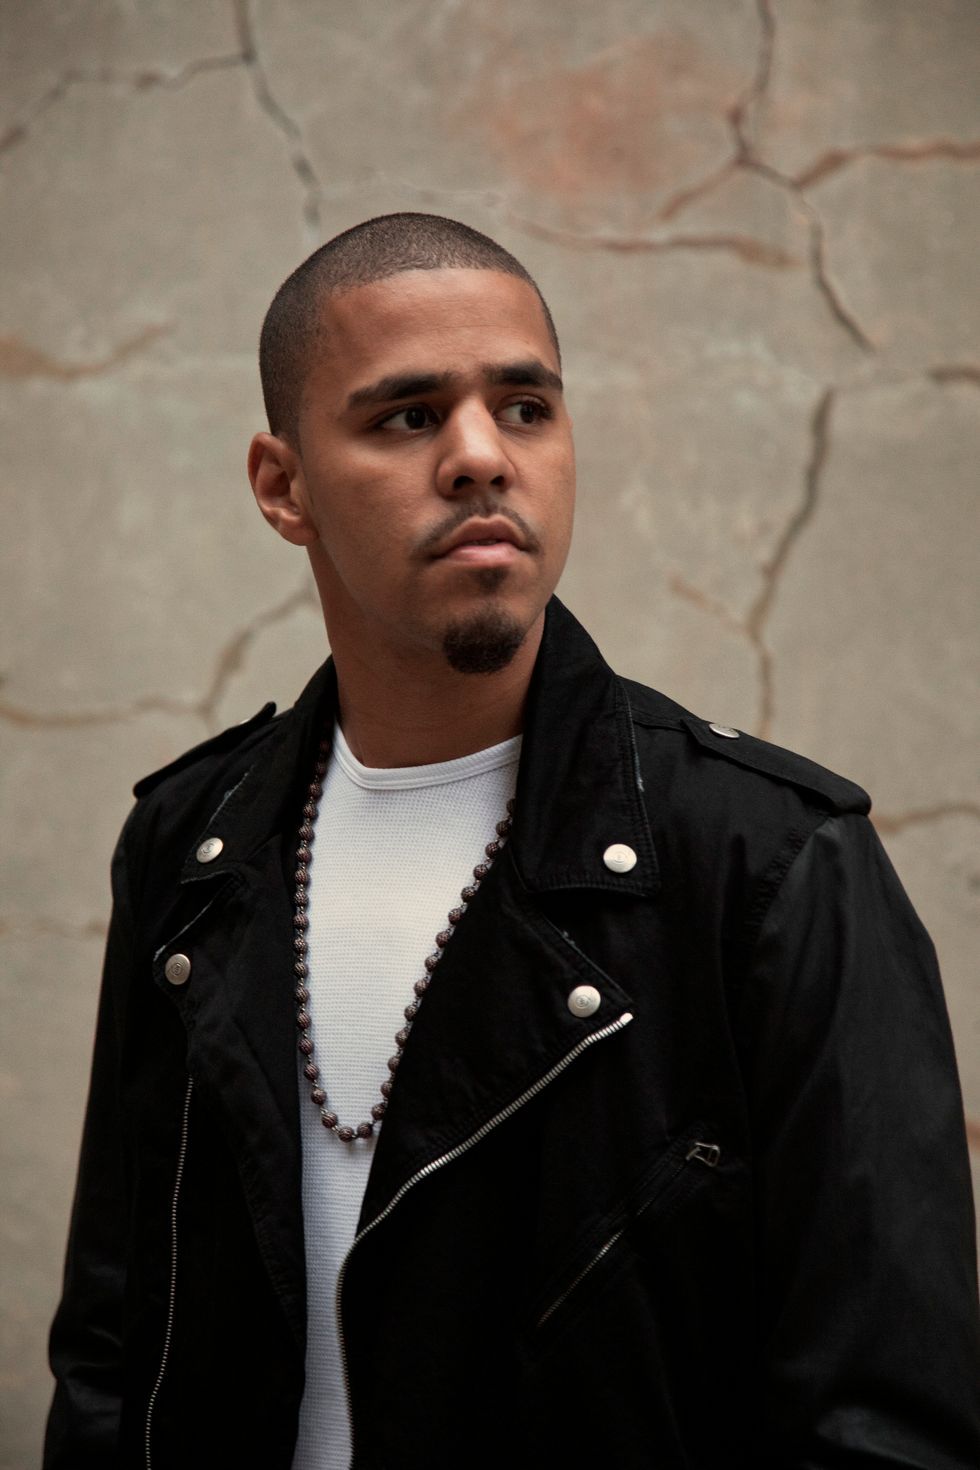 J. Cole's 5 Rules For the Road